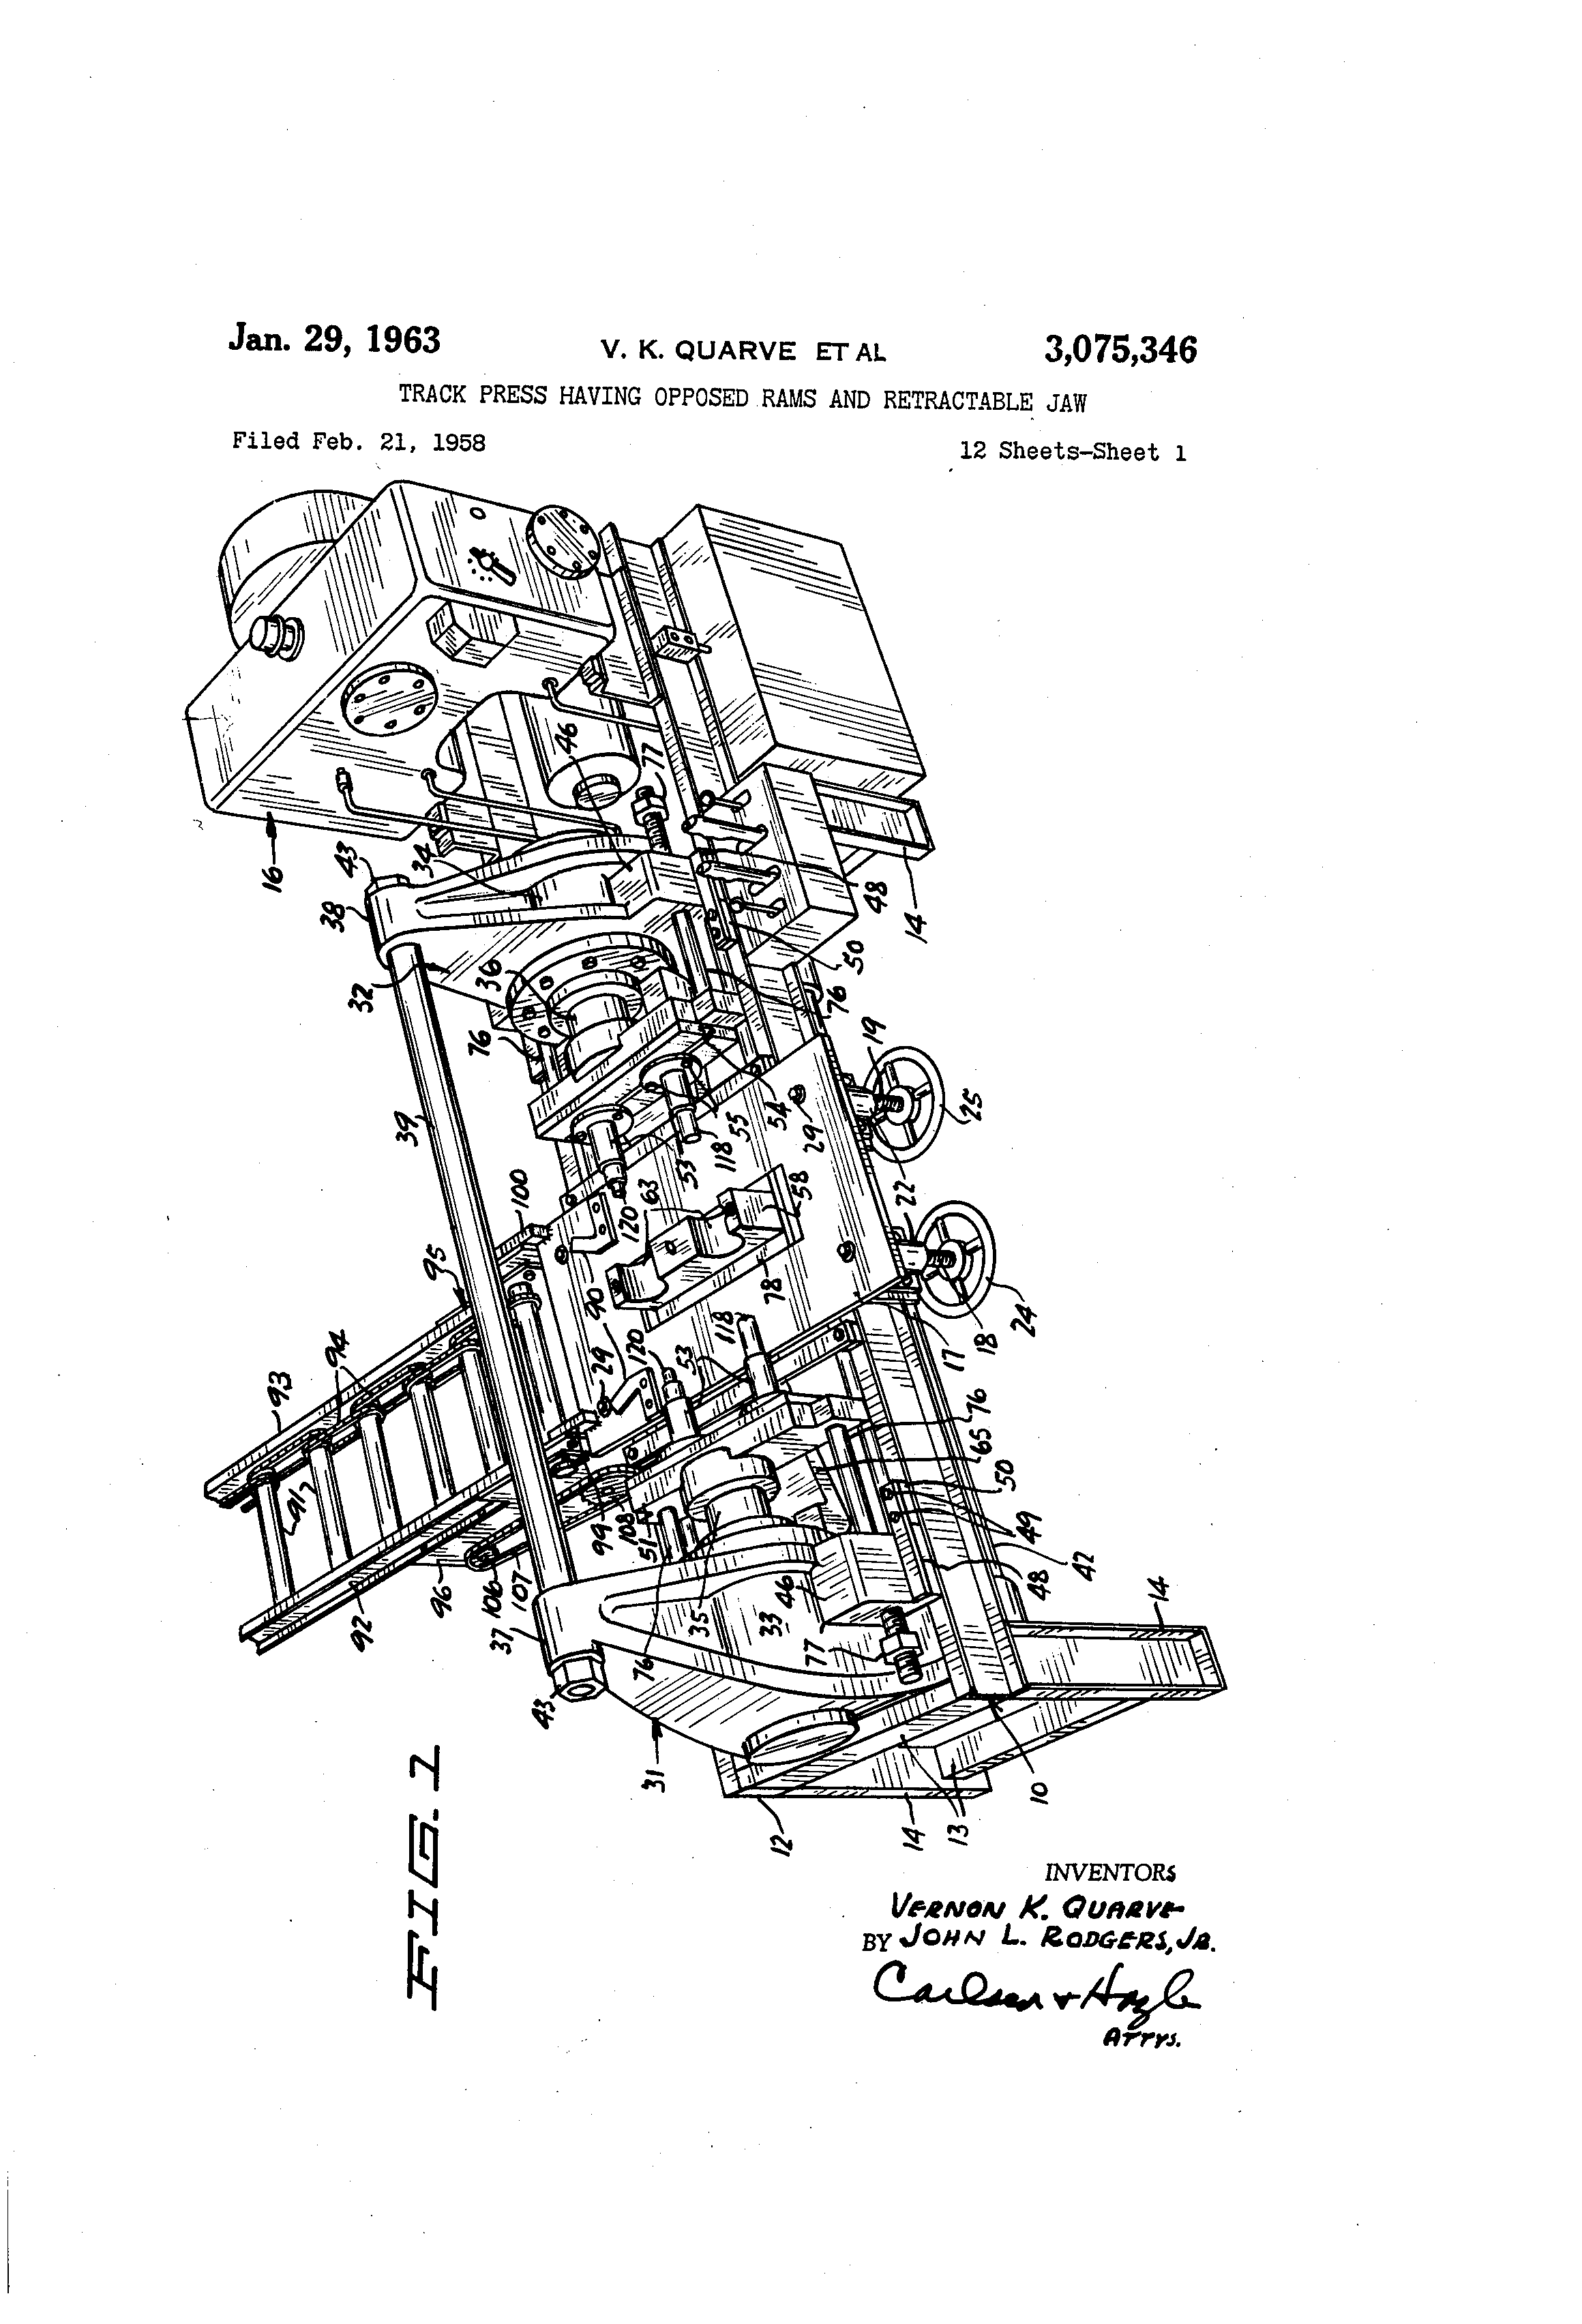 Patent Us3075346 Track Press Having Opposed Rams And Retractable Kawasaki Gpz 550 Wiring Diagram Drawing